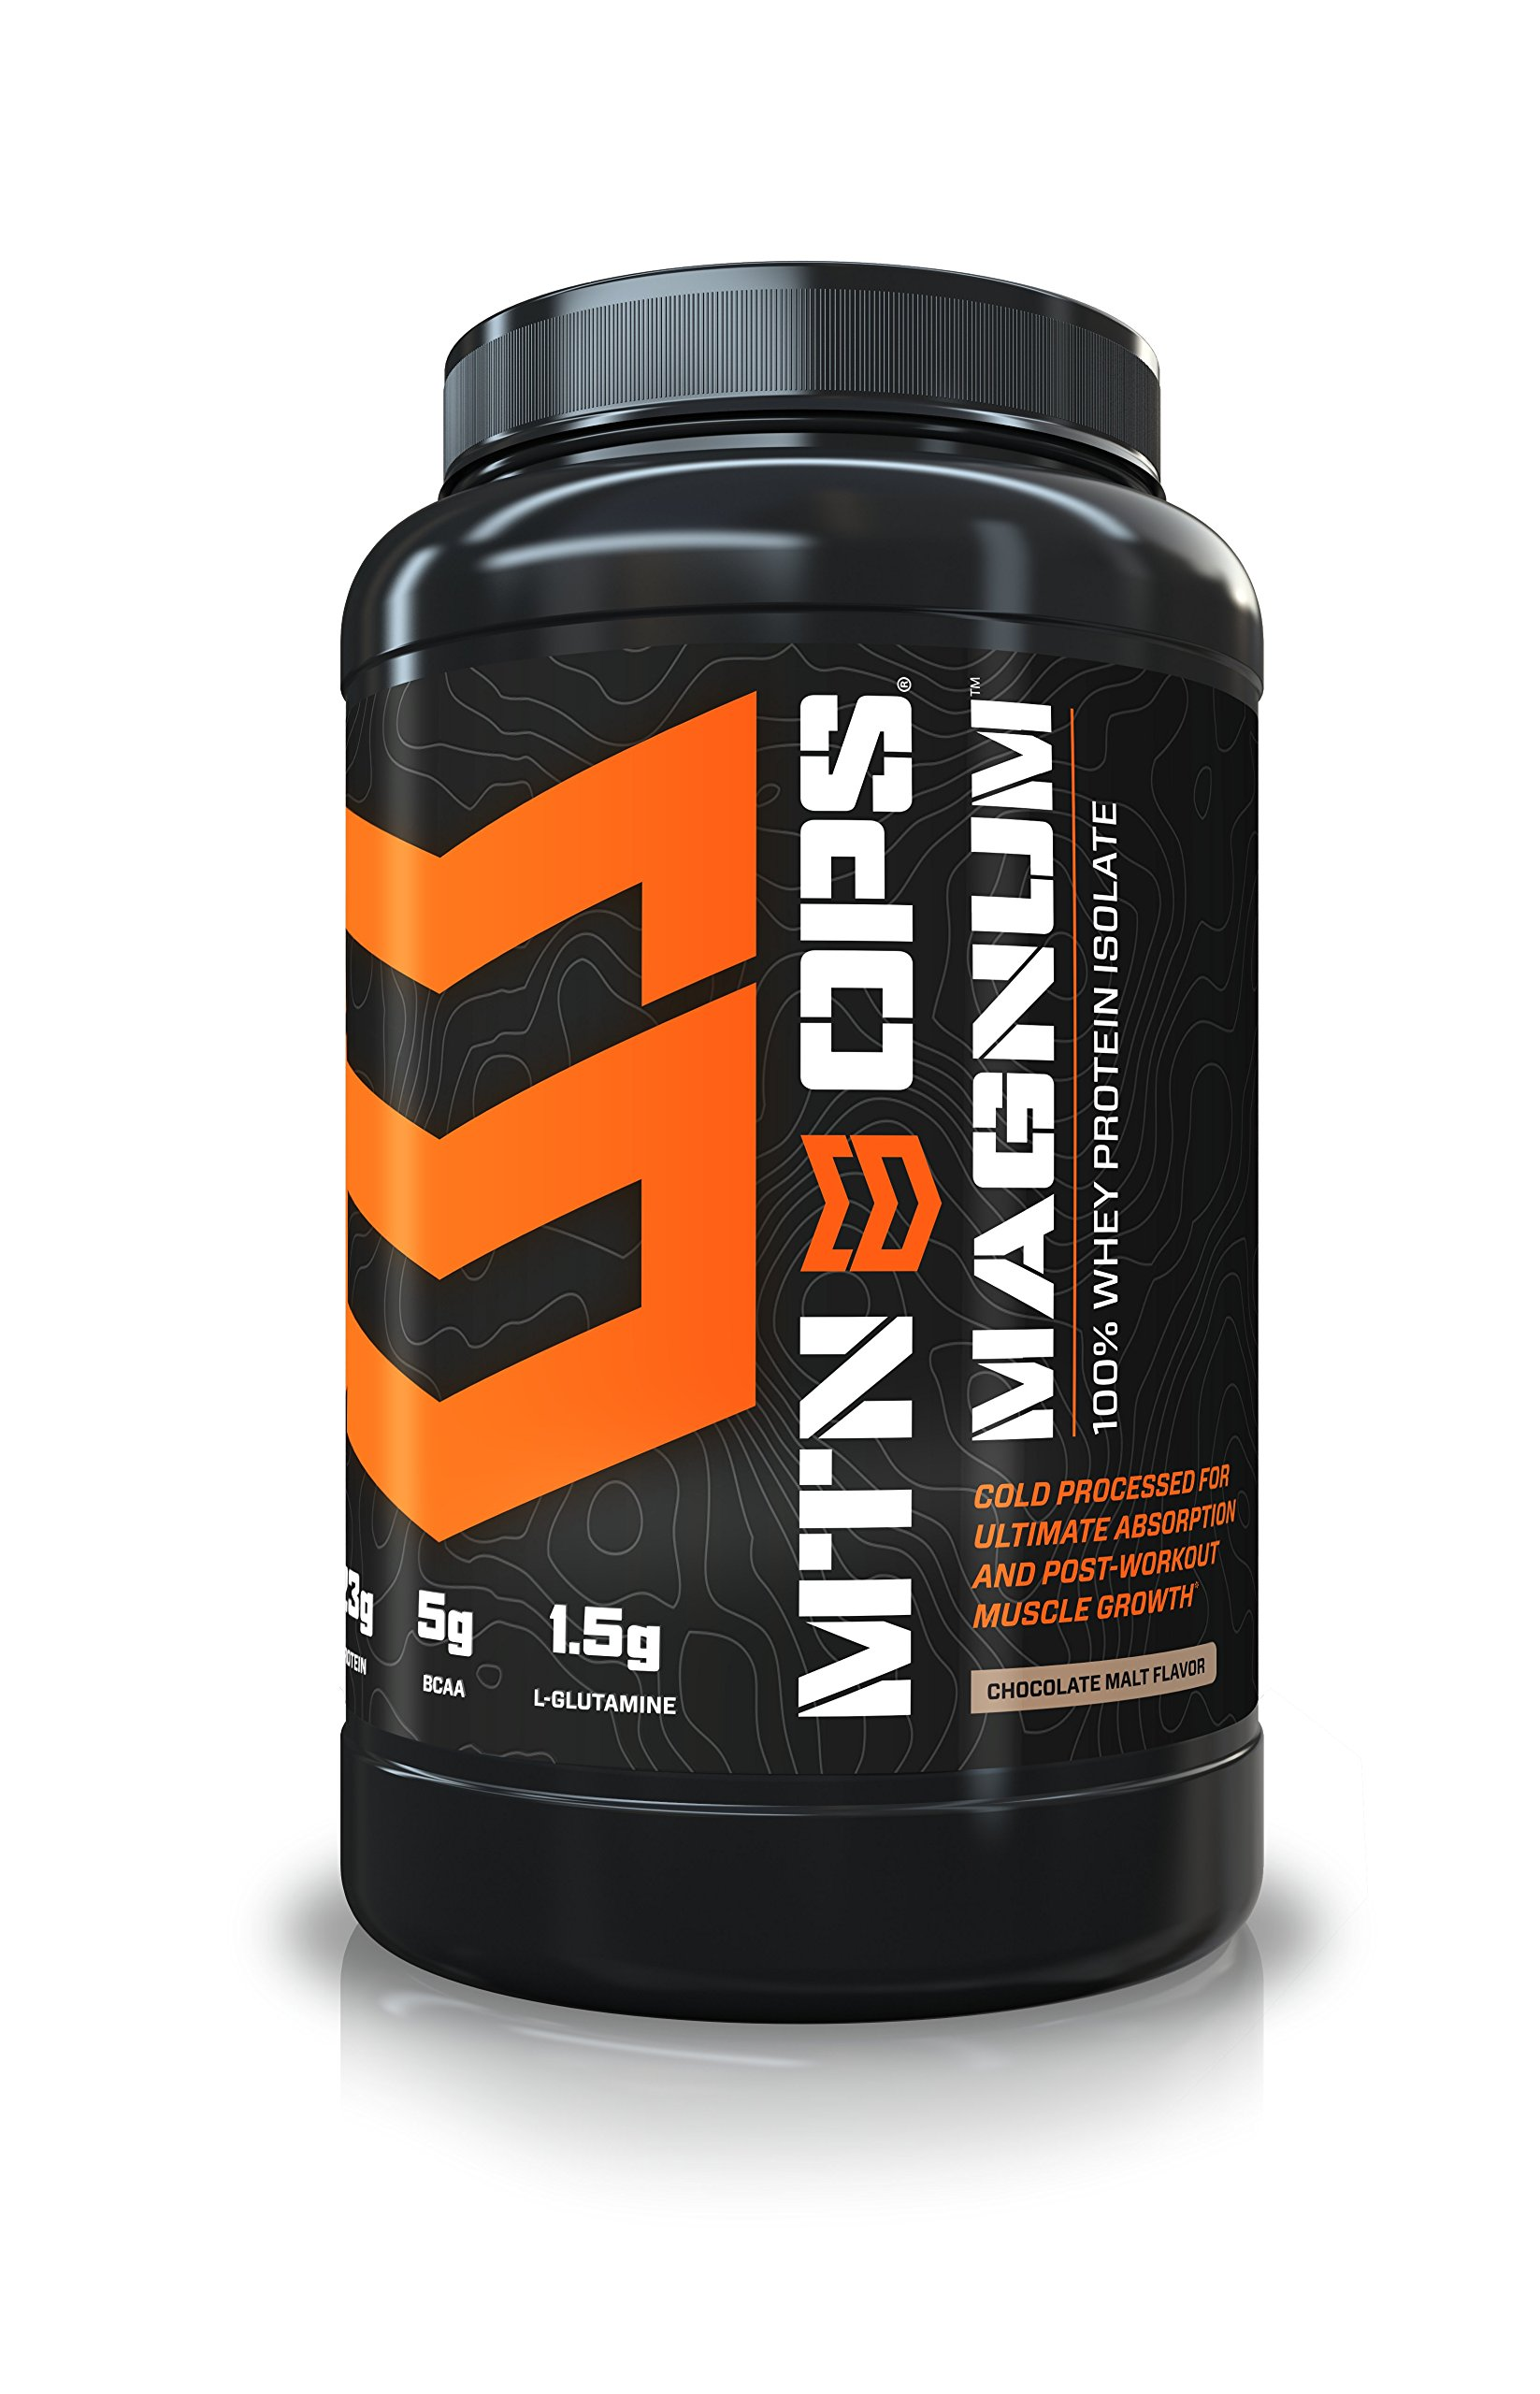 MTN OPS Magnum Whey Protein Powder, Post-Workout Muscle Growth and Recovery, Chocolate Malt Flavor, 32 Servings per Container